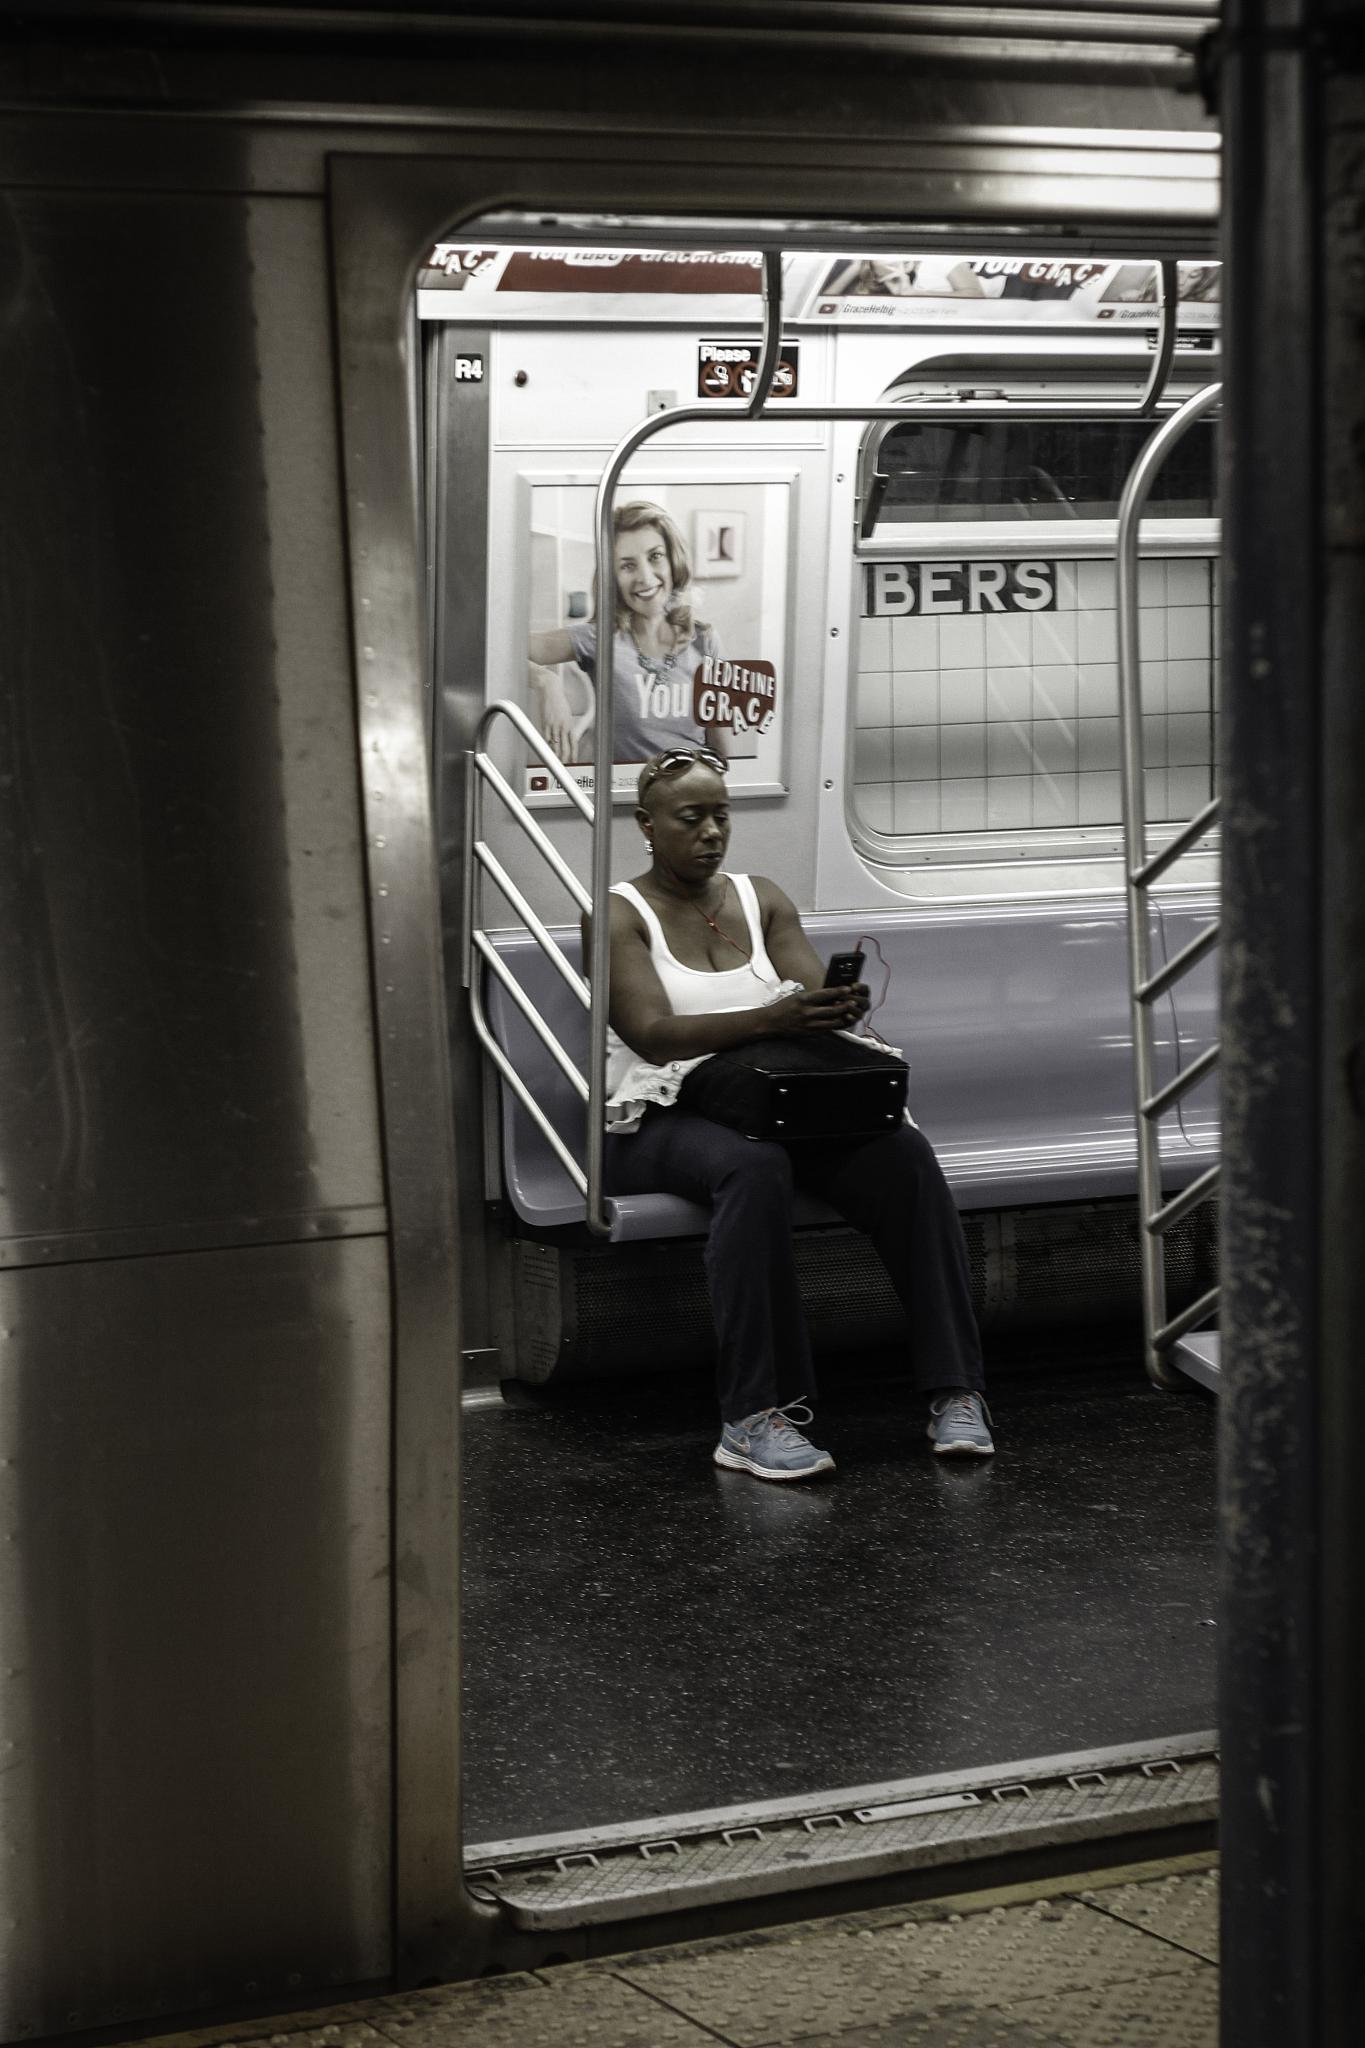 The A train at Chambers Station NYC by ruud.meulmeester